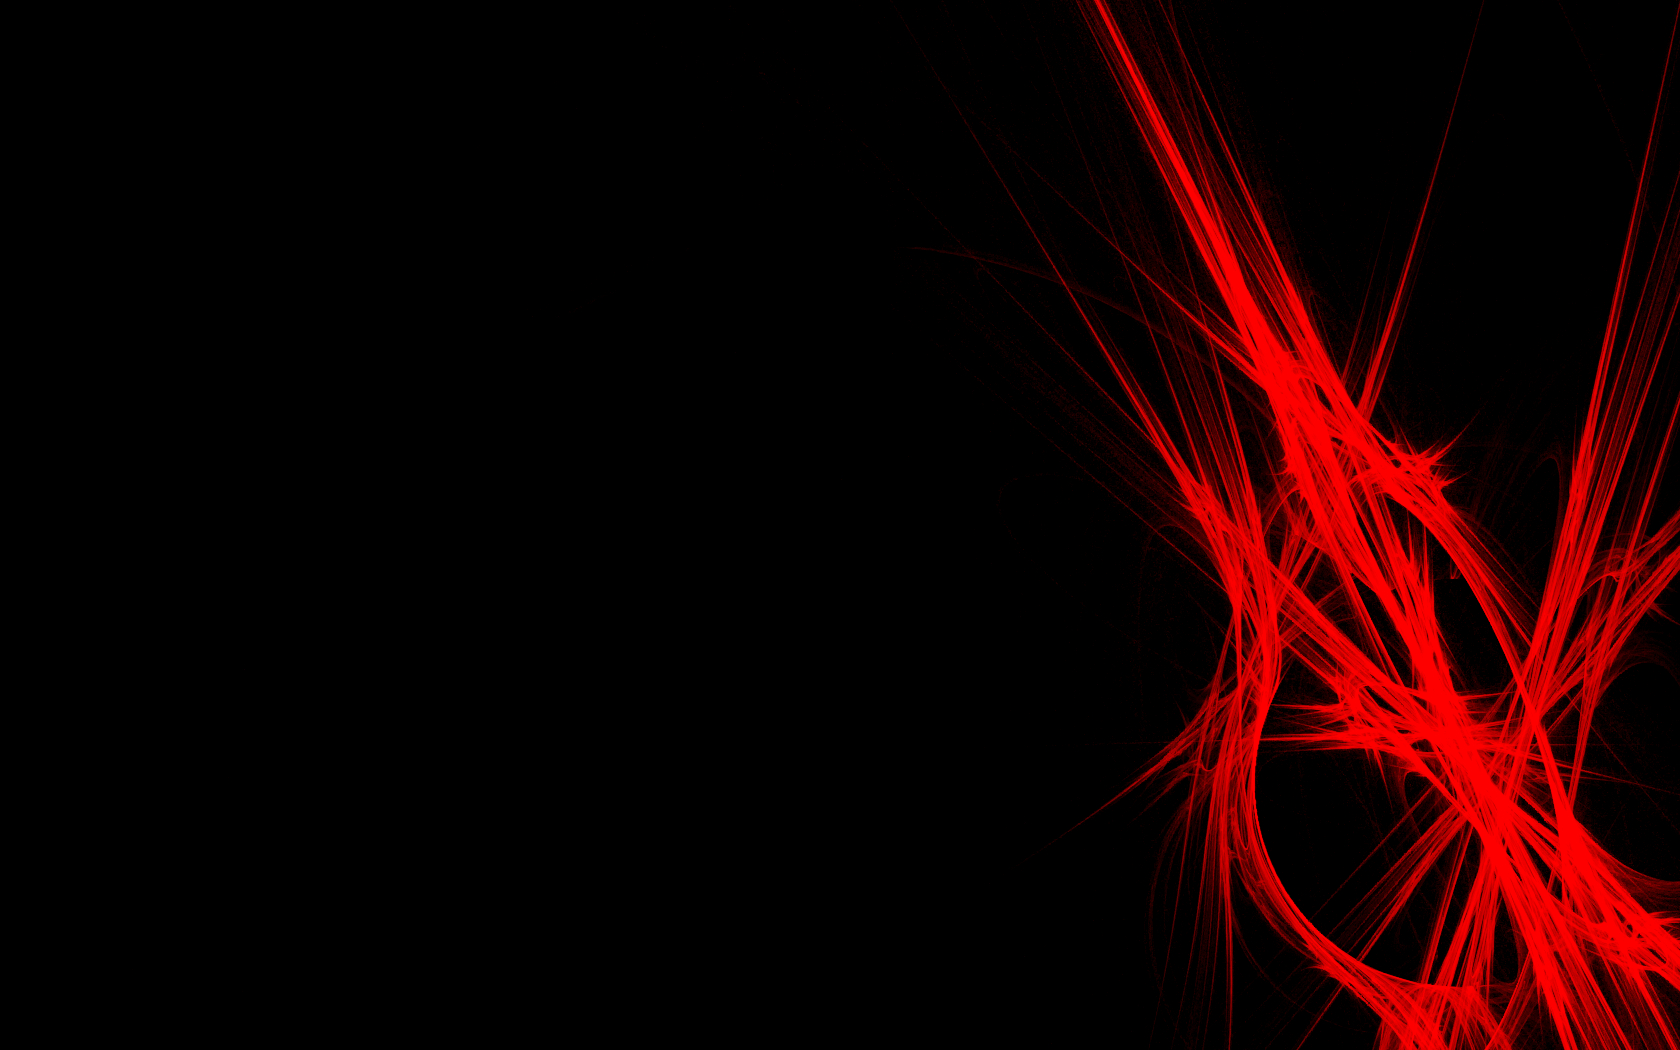 Black And RedAbstract Hd 4 Background 1680x1050